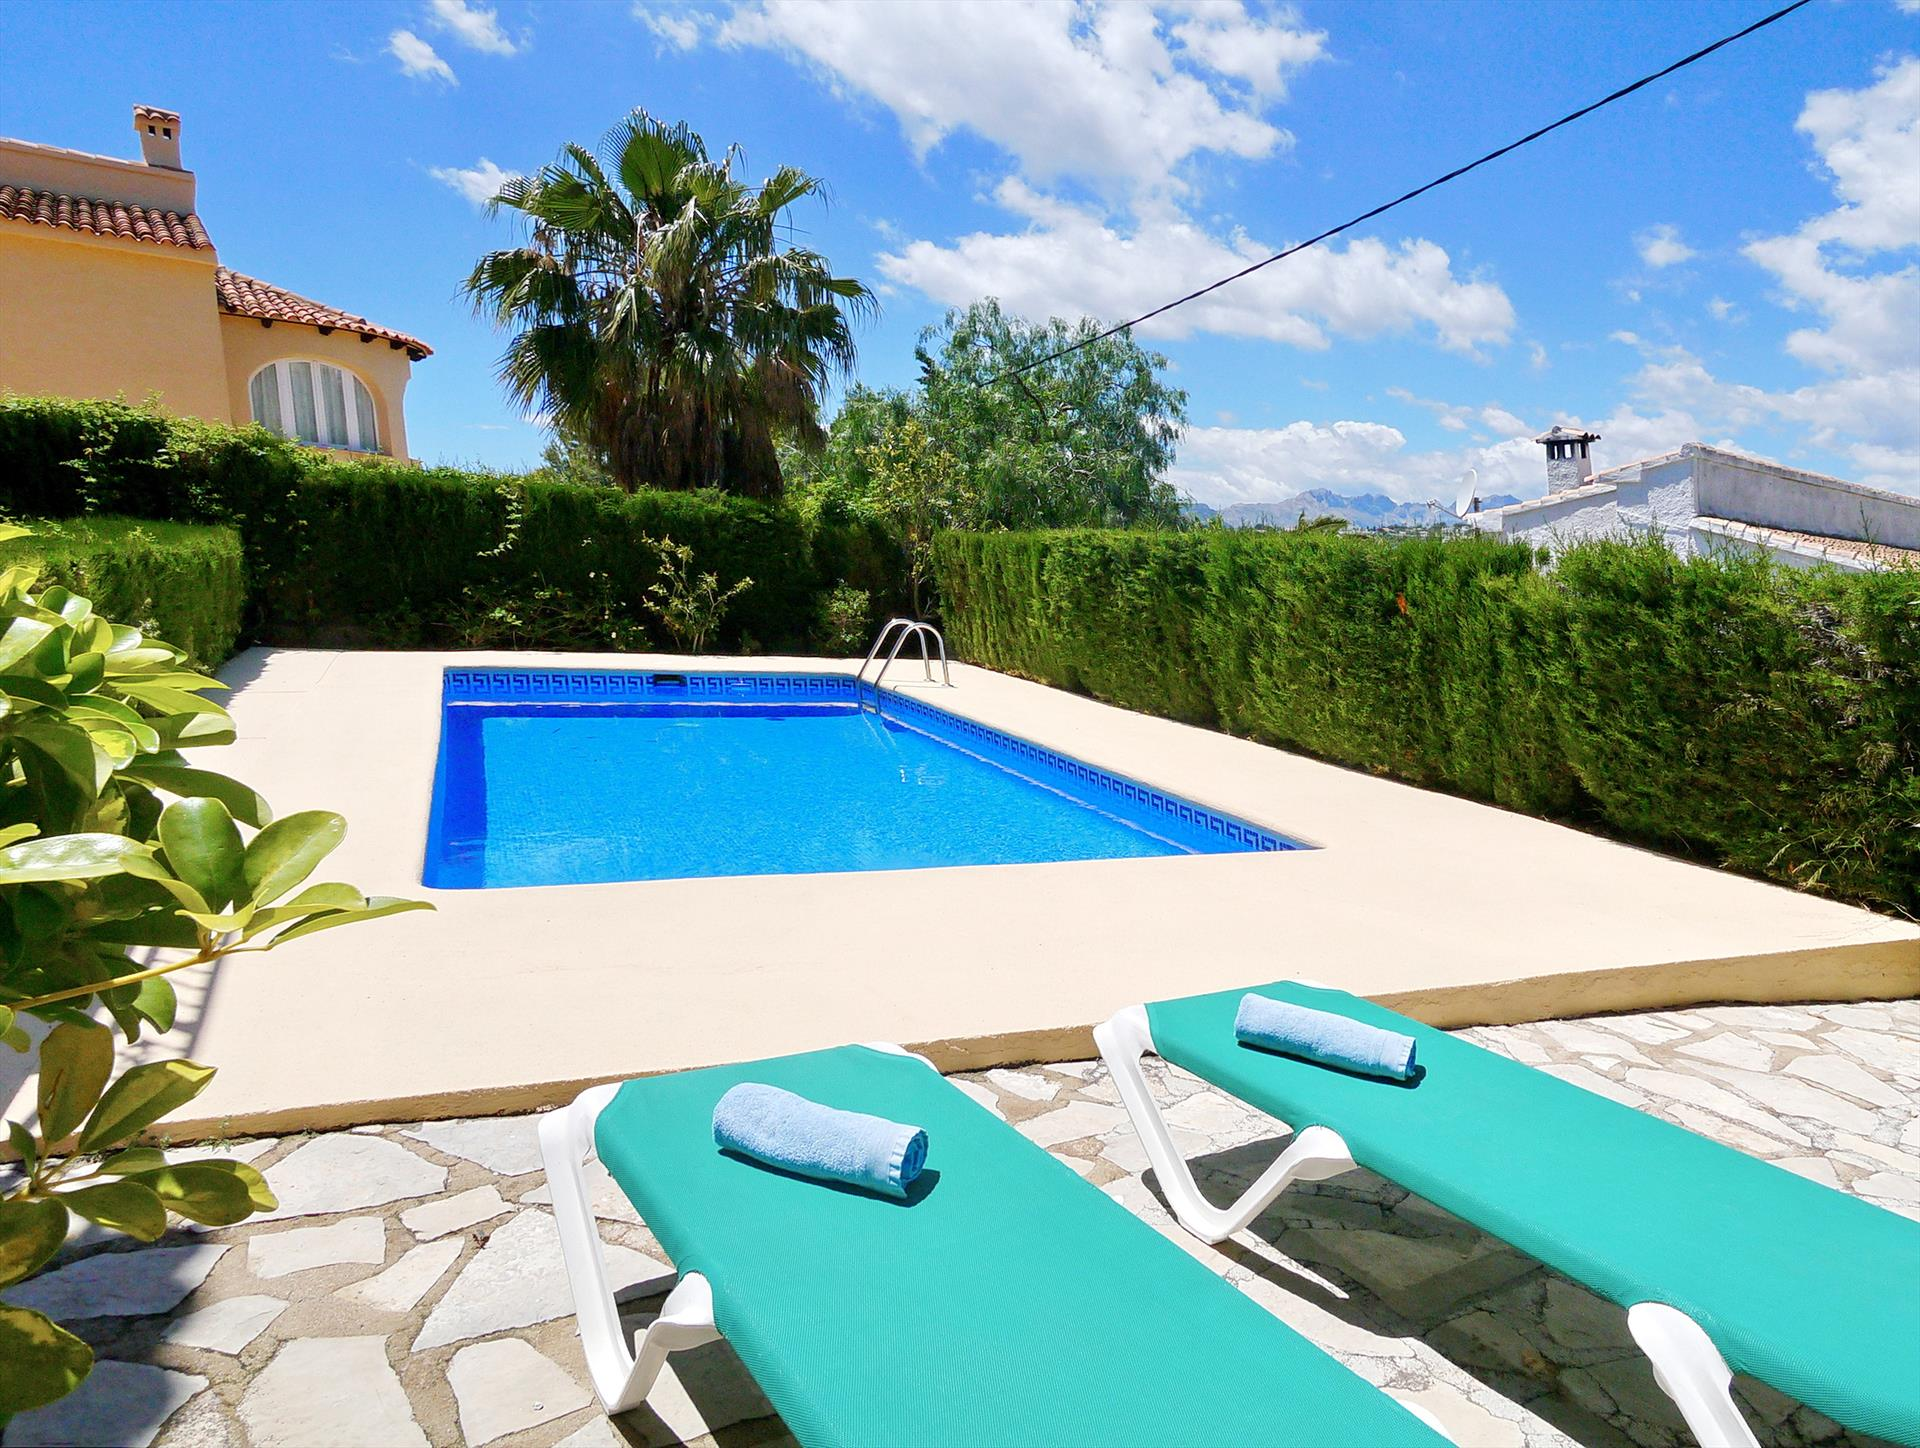 Josyan 4, Beautiful and comfortable villa in Benissa, on the Costa Blanca, Spain  with private pool for 4 persons.....